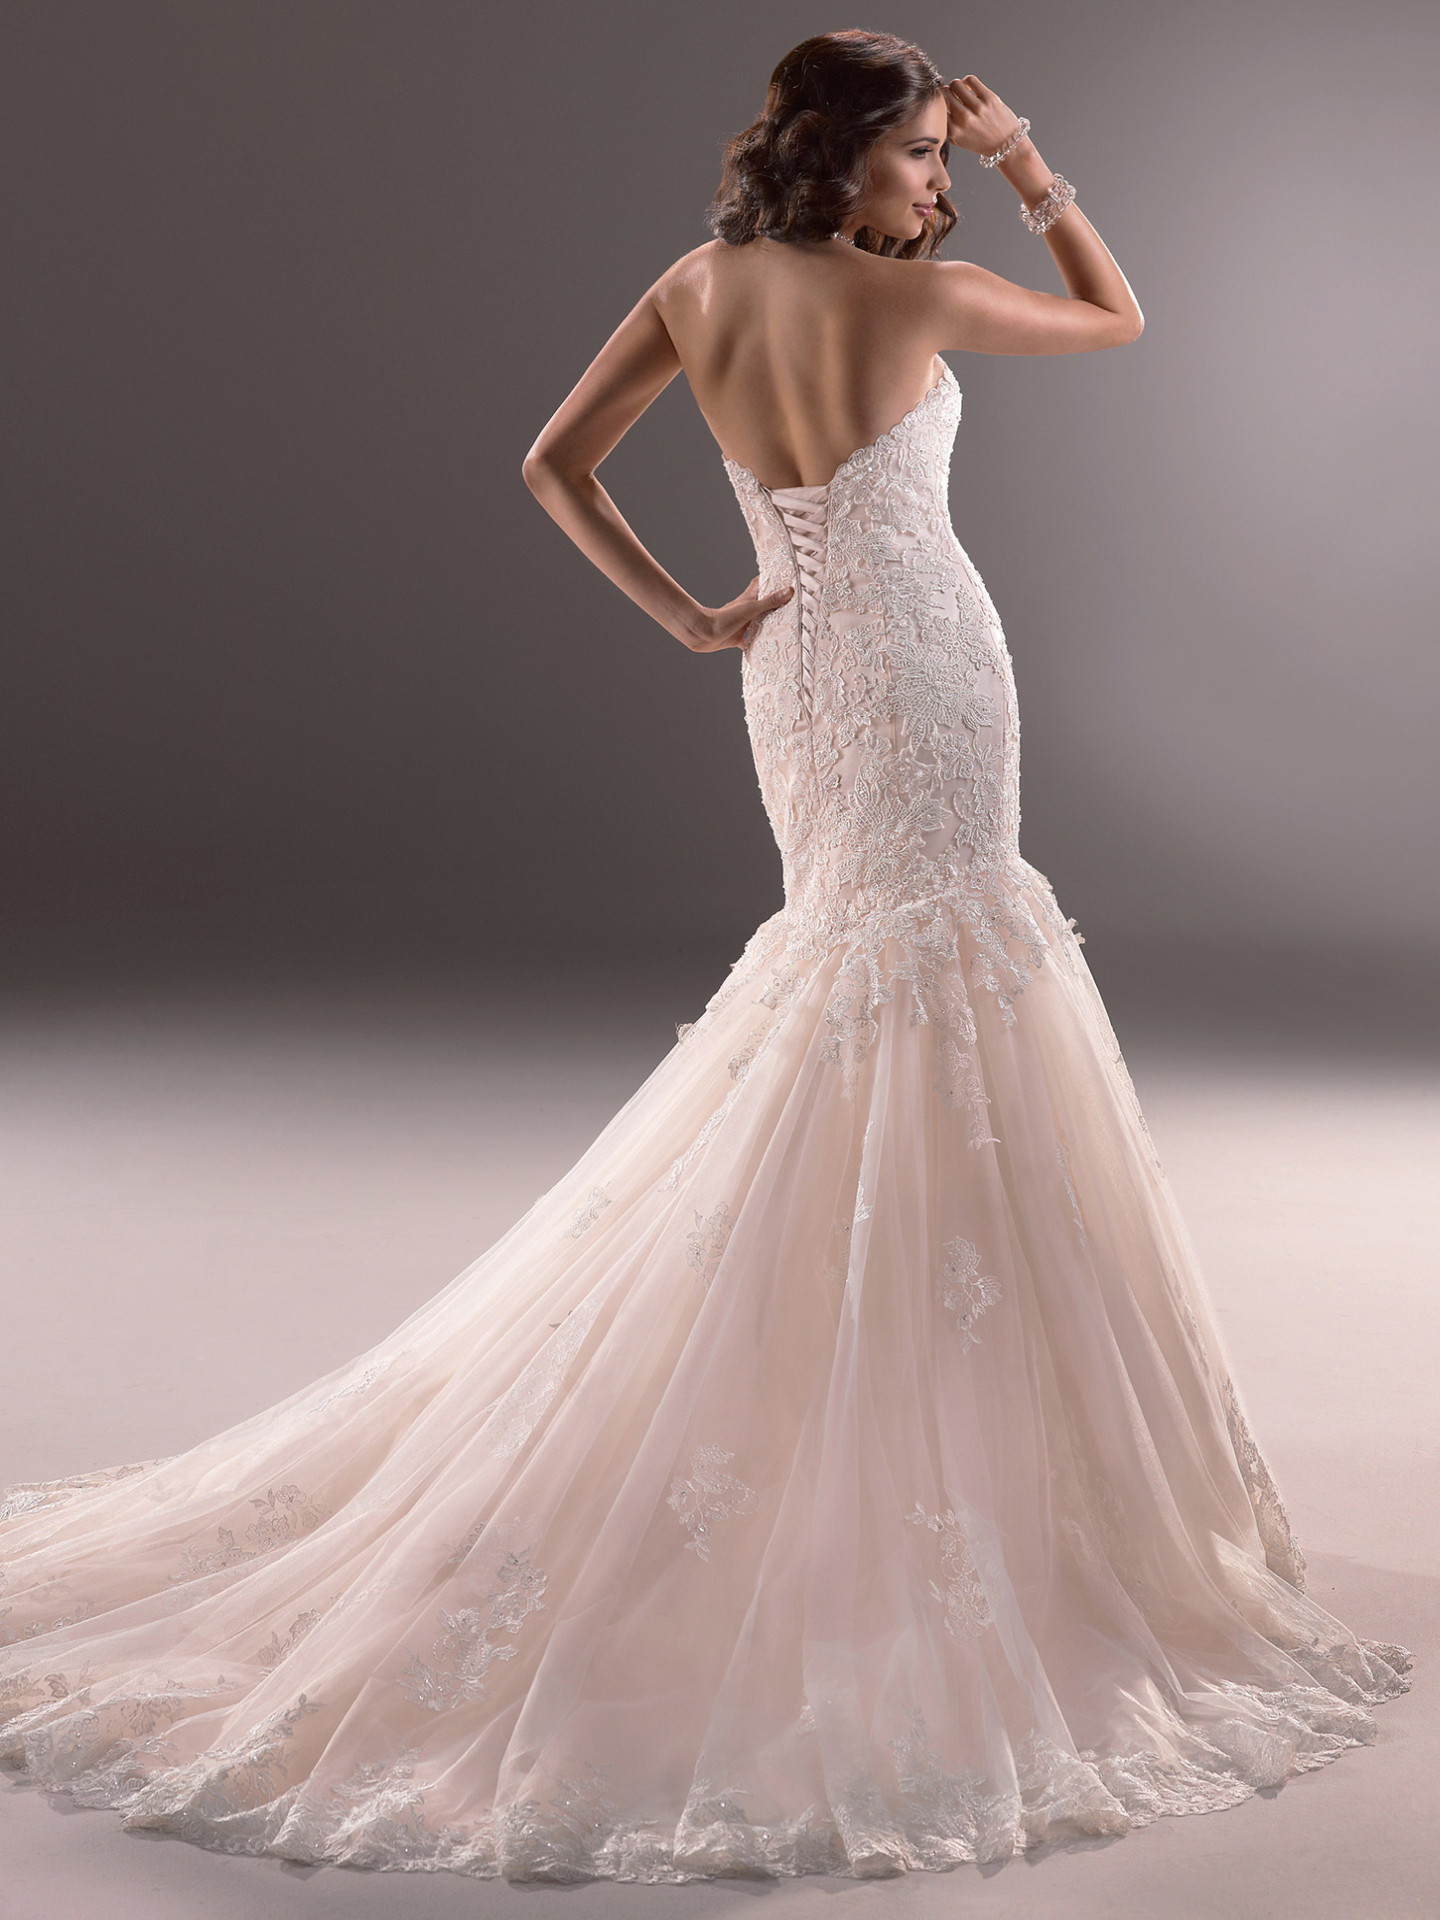 Affordable Marianne Blush Wedding Ly Embellished Lace Adorns Thisdramatic Fit Flare Wedding Gown Even More Blush Wedding Dresses By Maggie Sottero Love Maggie wedding dress Blush Wedding Dress